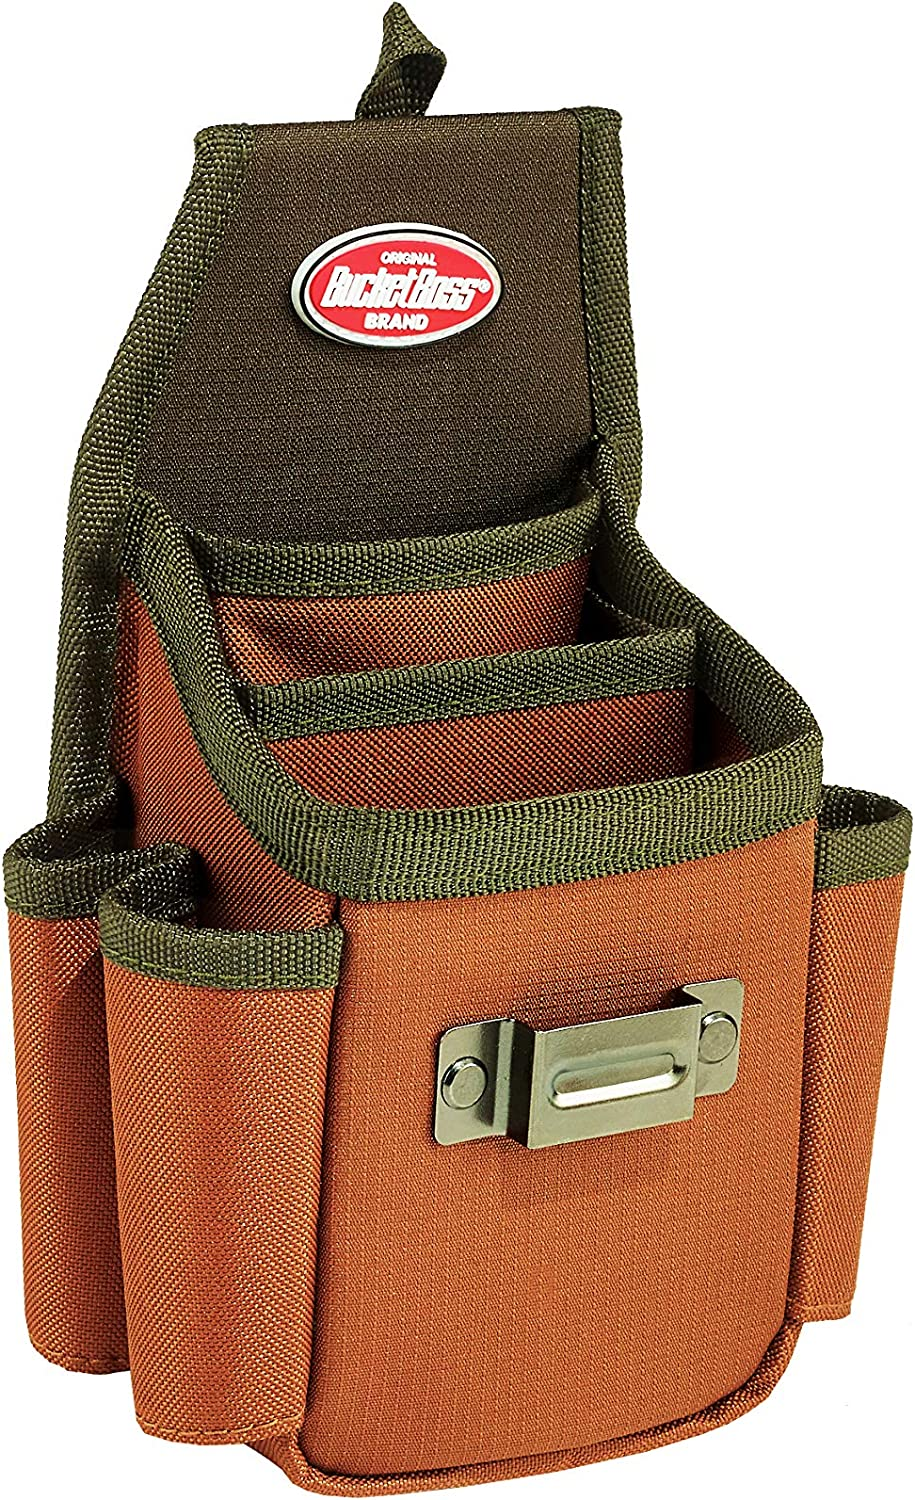 54140 Bucket Boss Tool Pouch with FlapFit in Brown